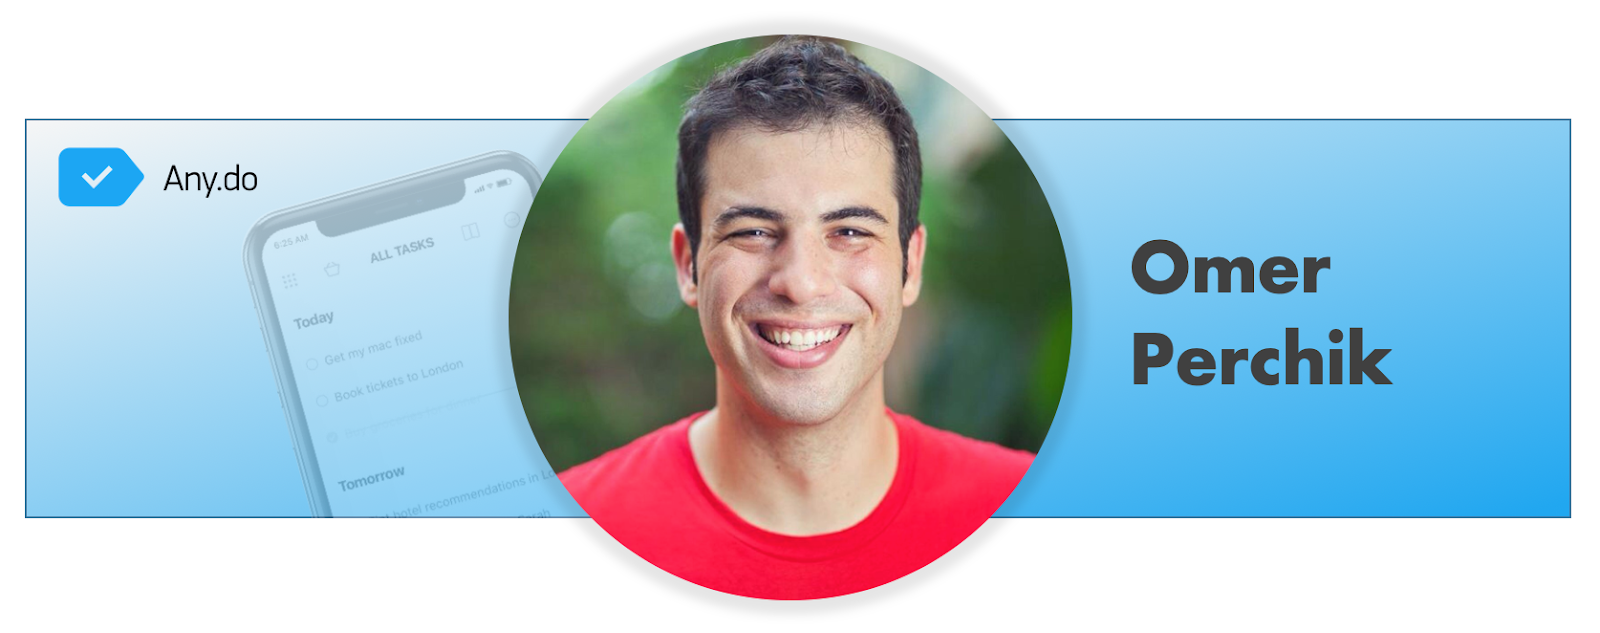 Omer Perchik, founder of any.do - the mobile spoon